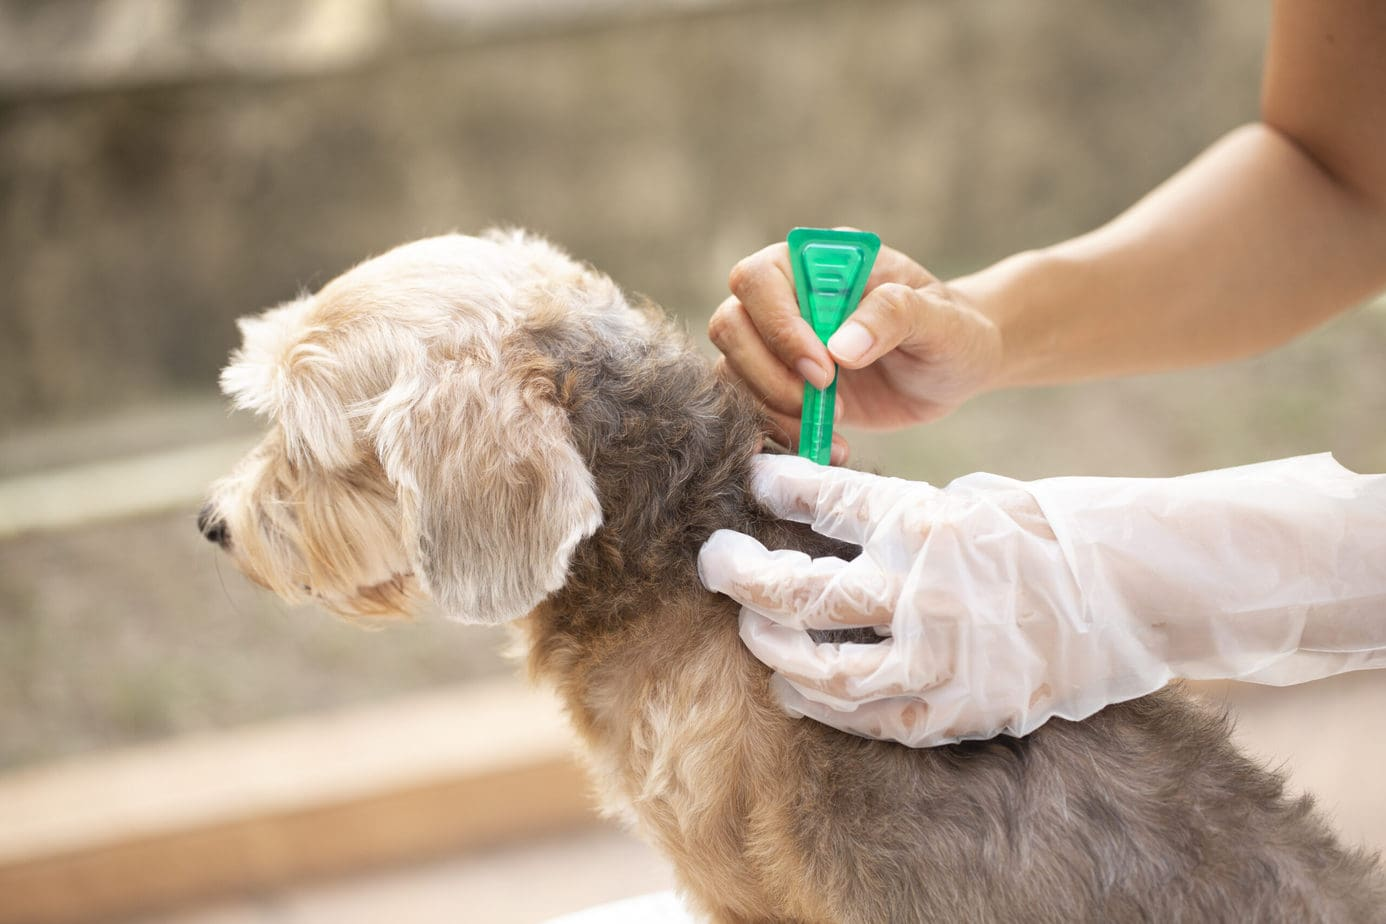 applying flea medication to your puppy is really important and needs to be a part of the puppy starter checklist!